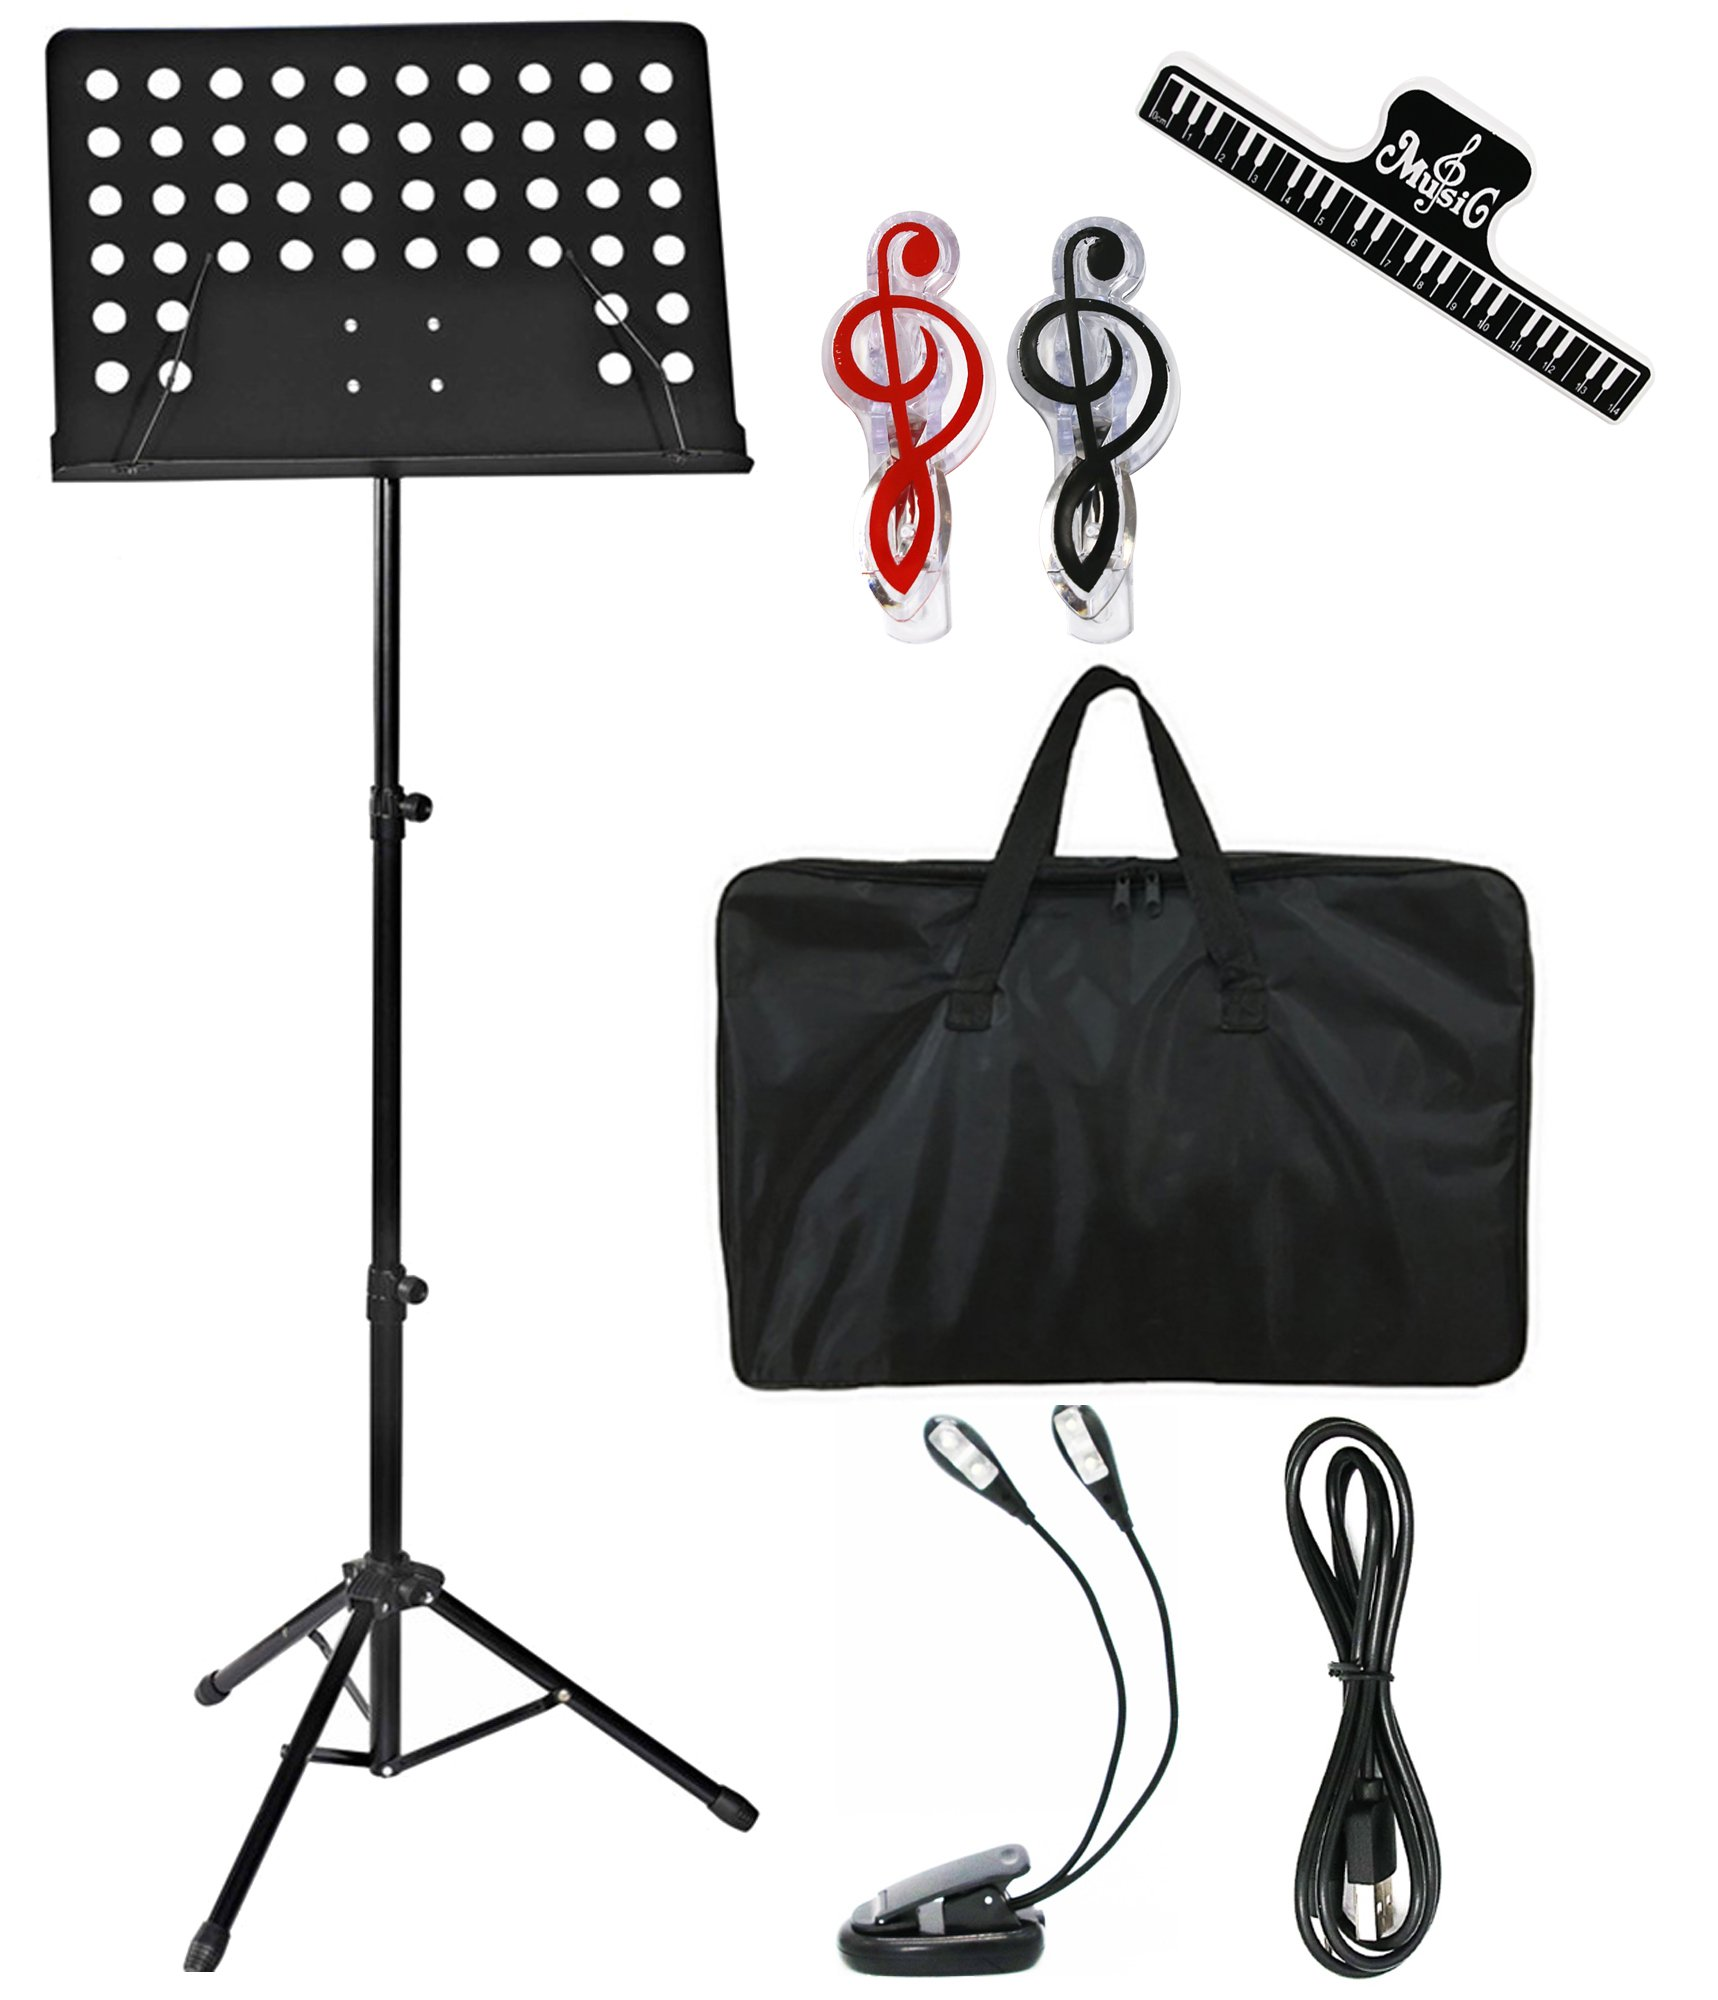 MELODIC Music Stand Professional Collapsible Orchestra Sheet Music Stand with Music Stand for Music Sheet, Instrument Books with LED light,Carrying Bag Perfect for Instrumental Performance.